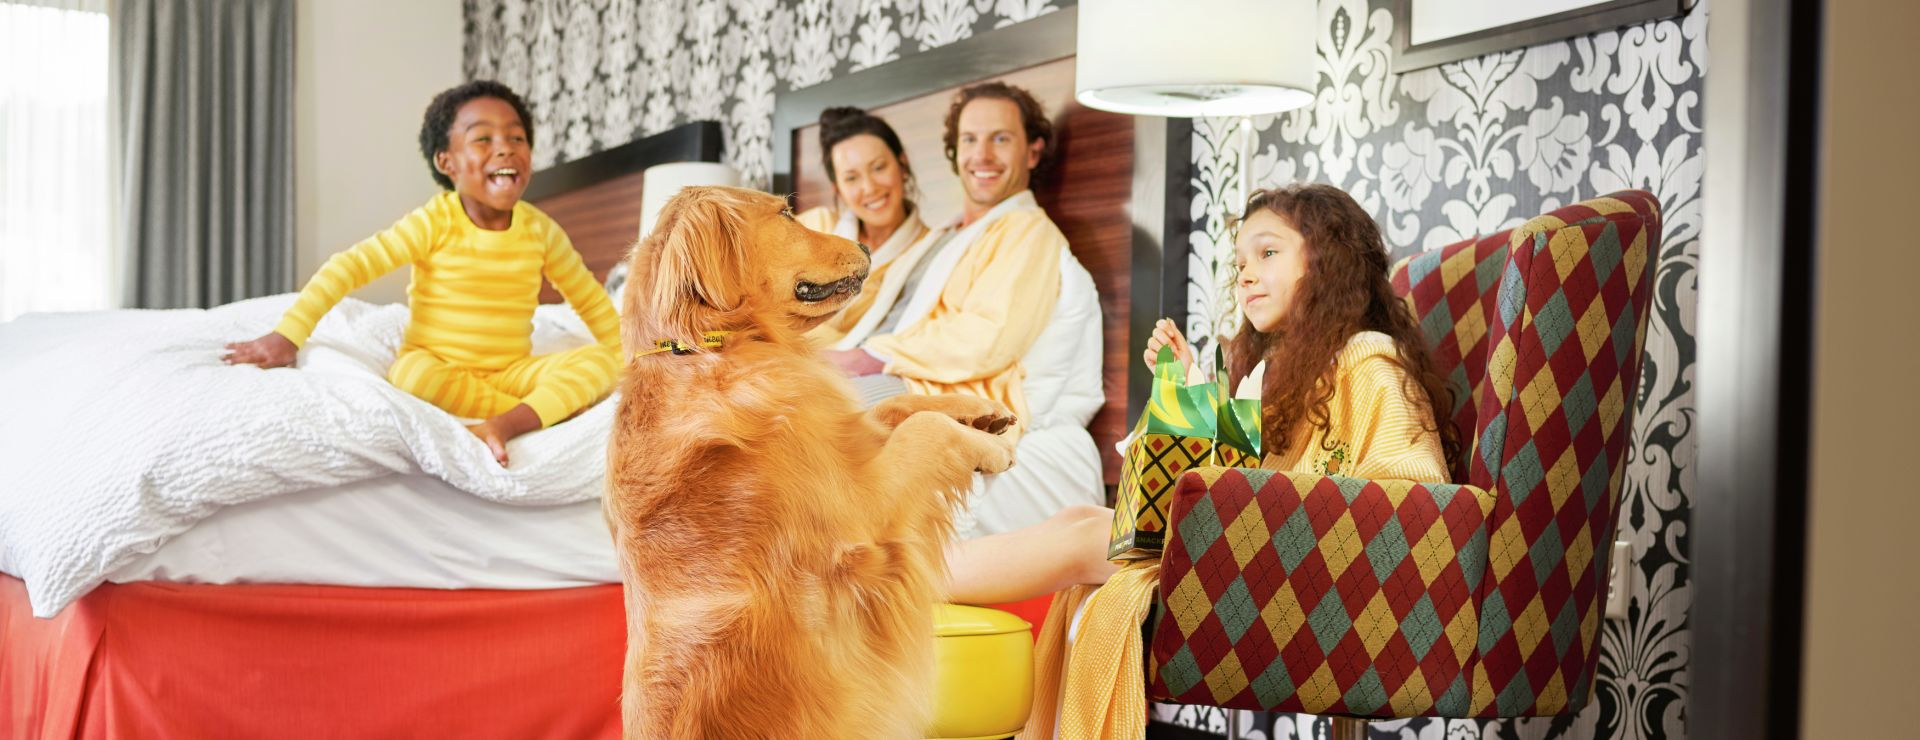 Family in guestroom with dog